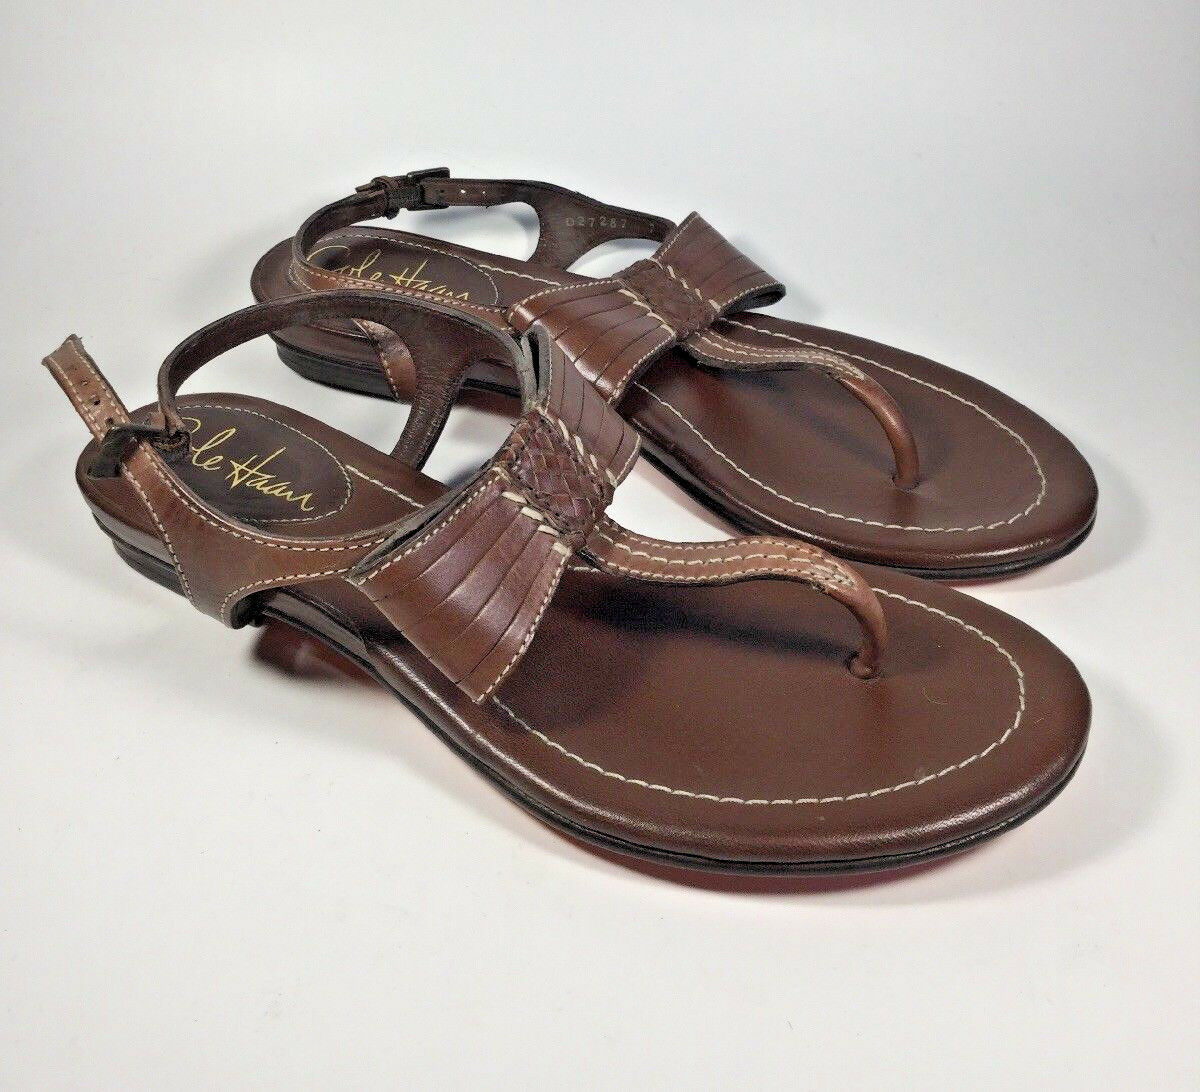 M3418L New Cole Haan Women's Brown Leather Sandal US 7 M